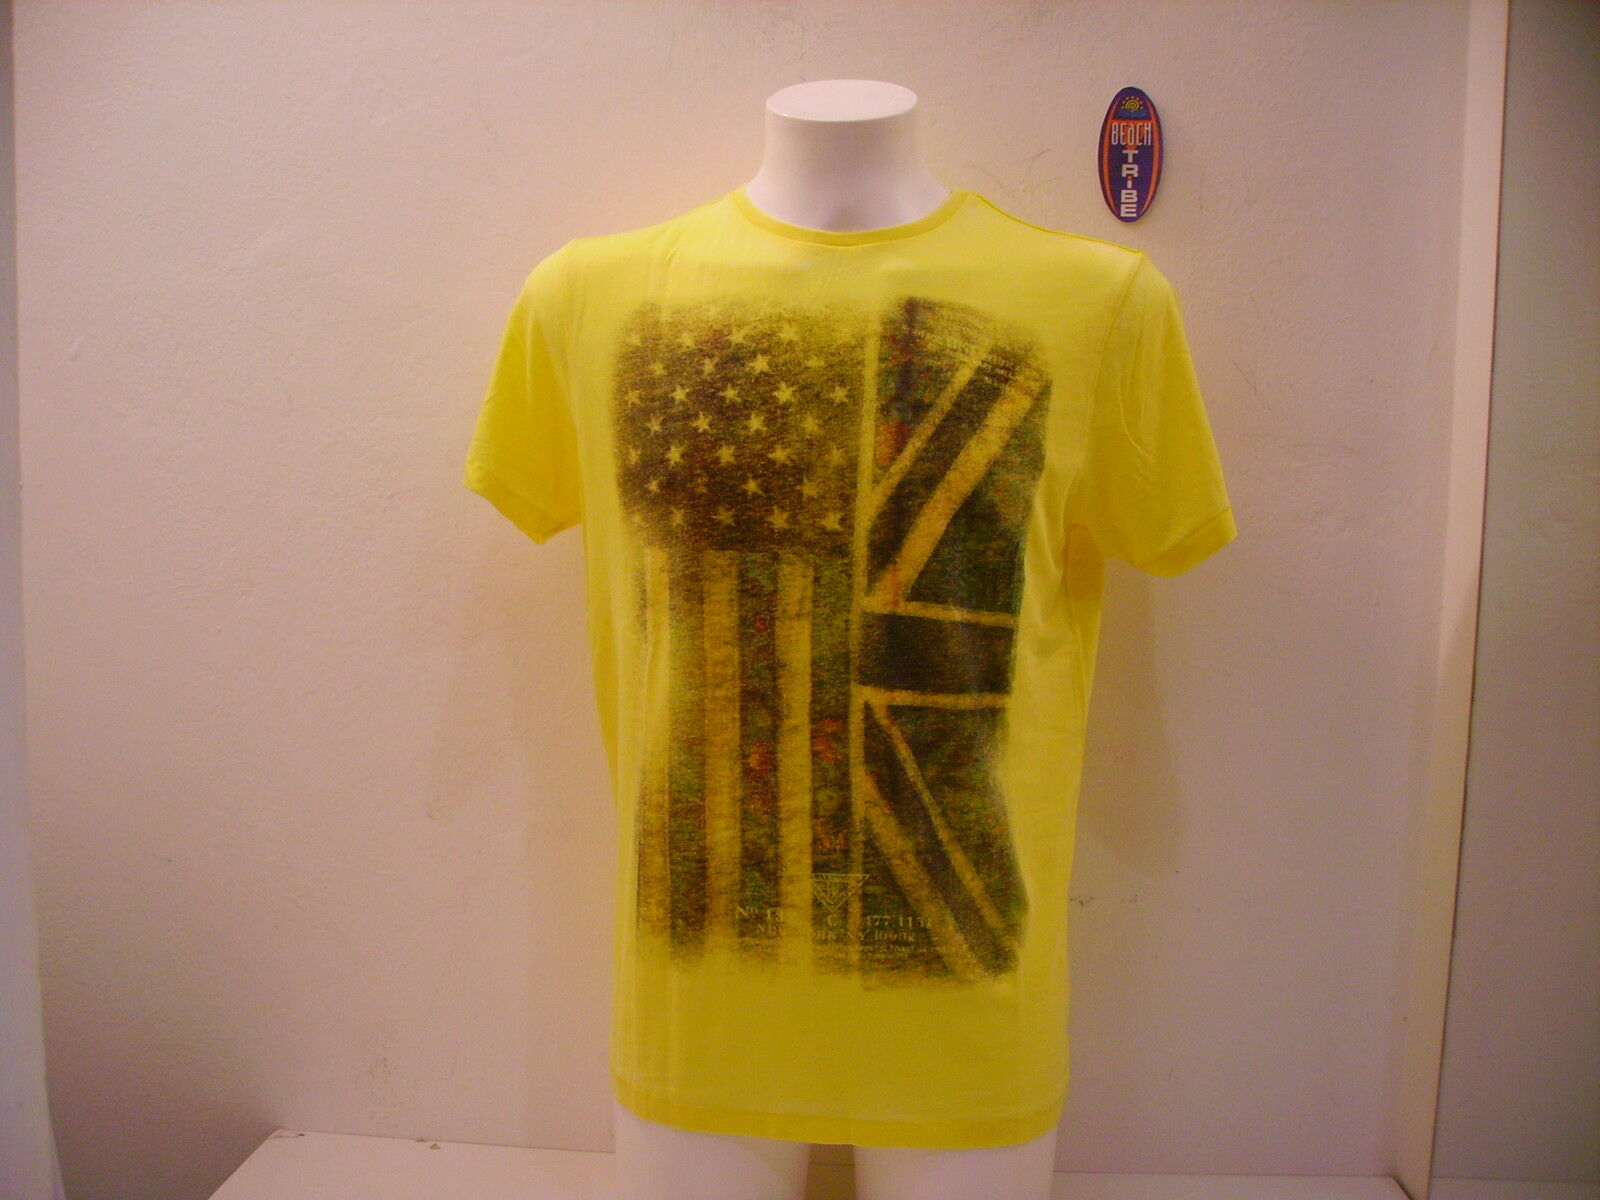 CATBALOU MEN'S T-SHIRT SHORT SLEEVE PHONE YELLOW L